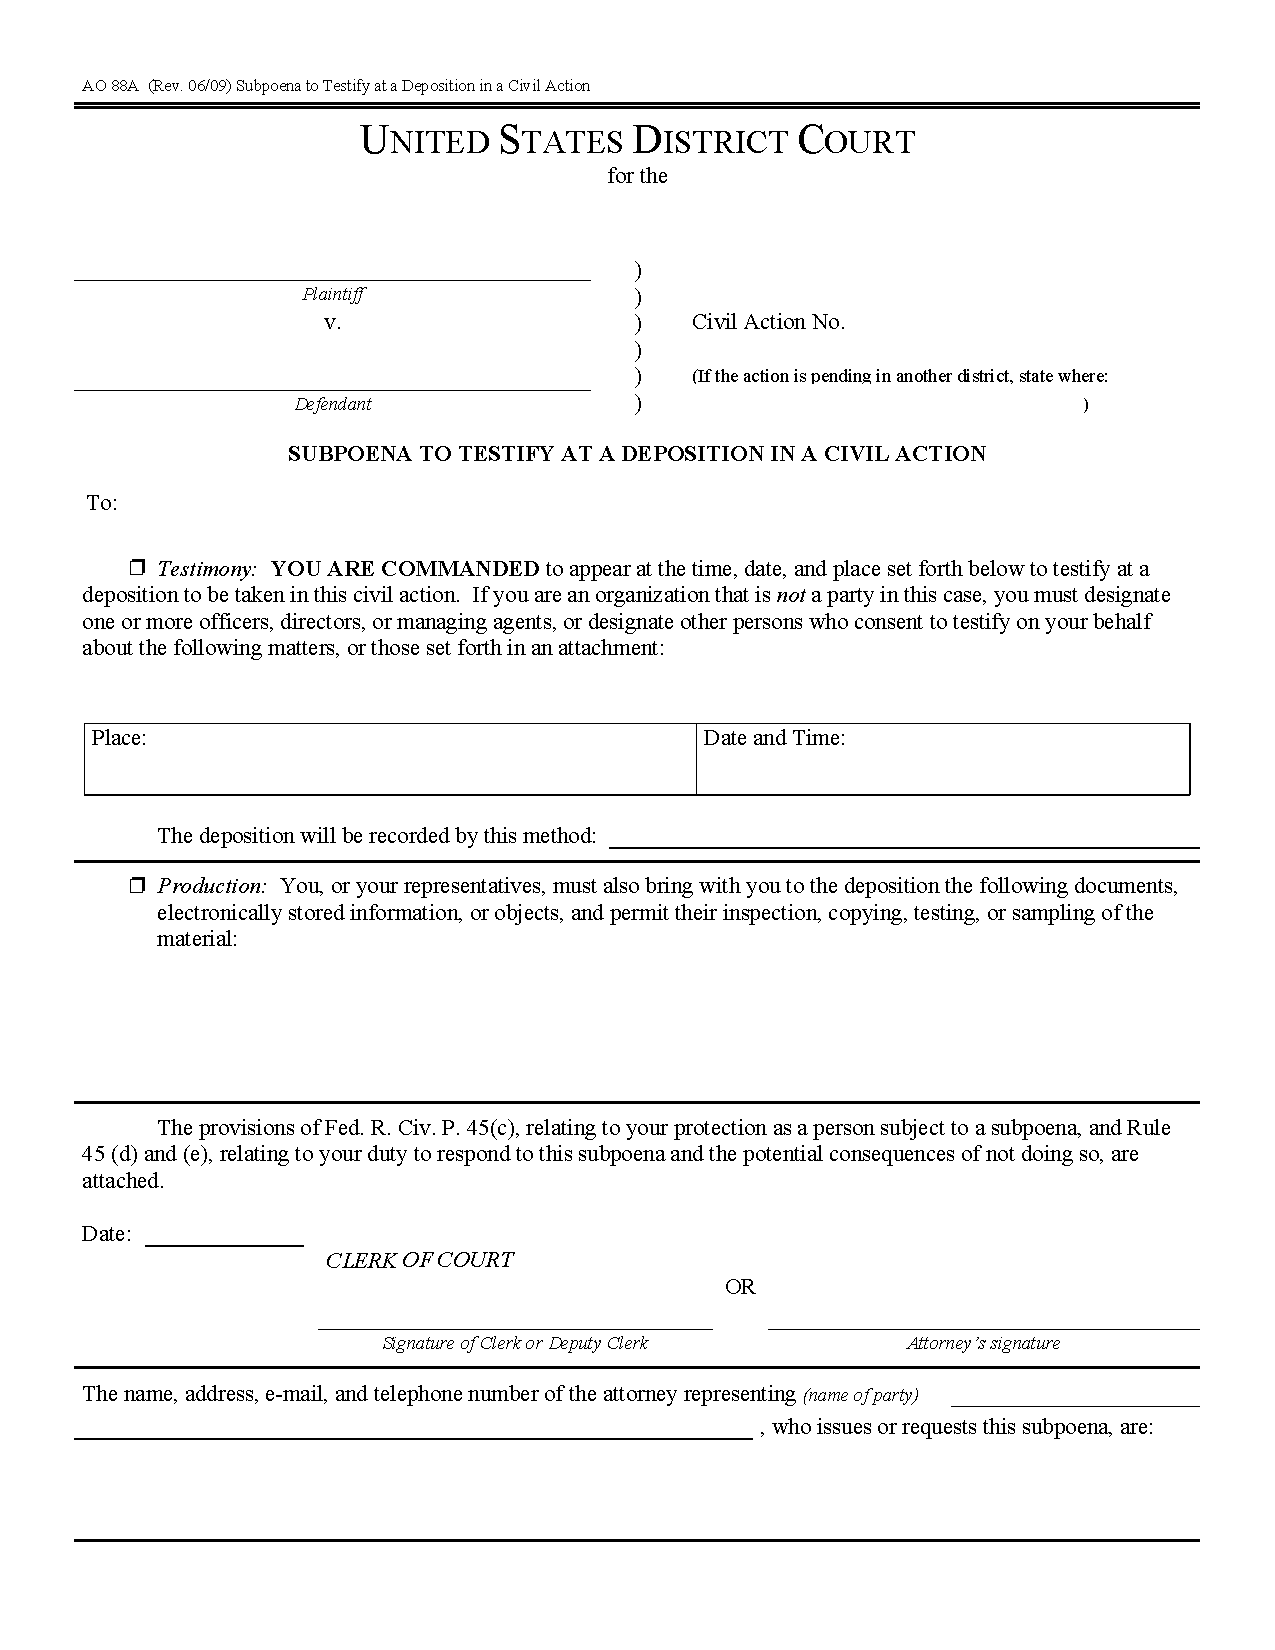 Form AO 088A Subpoena to Testify at a Deposition in a Civil Action